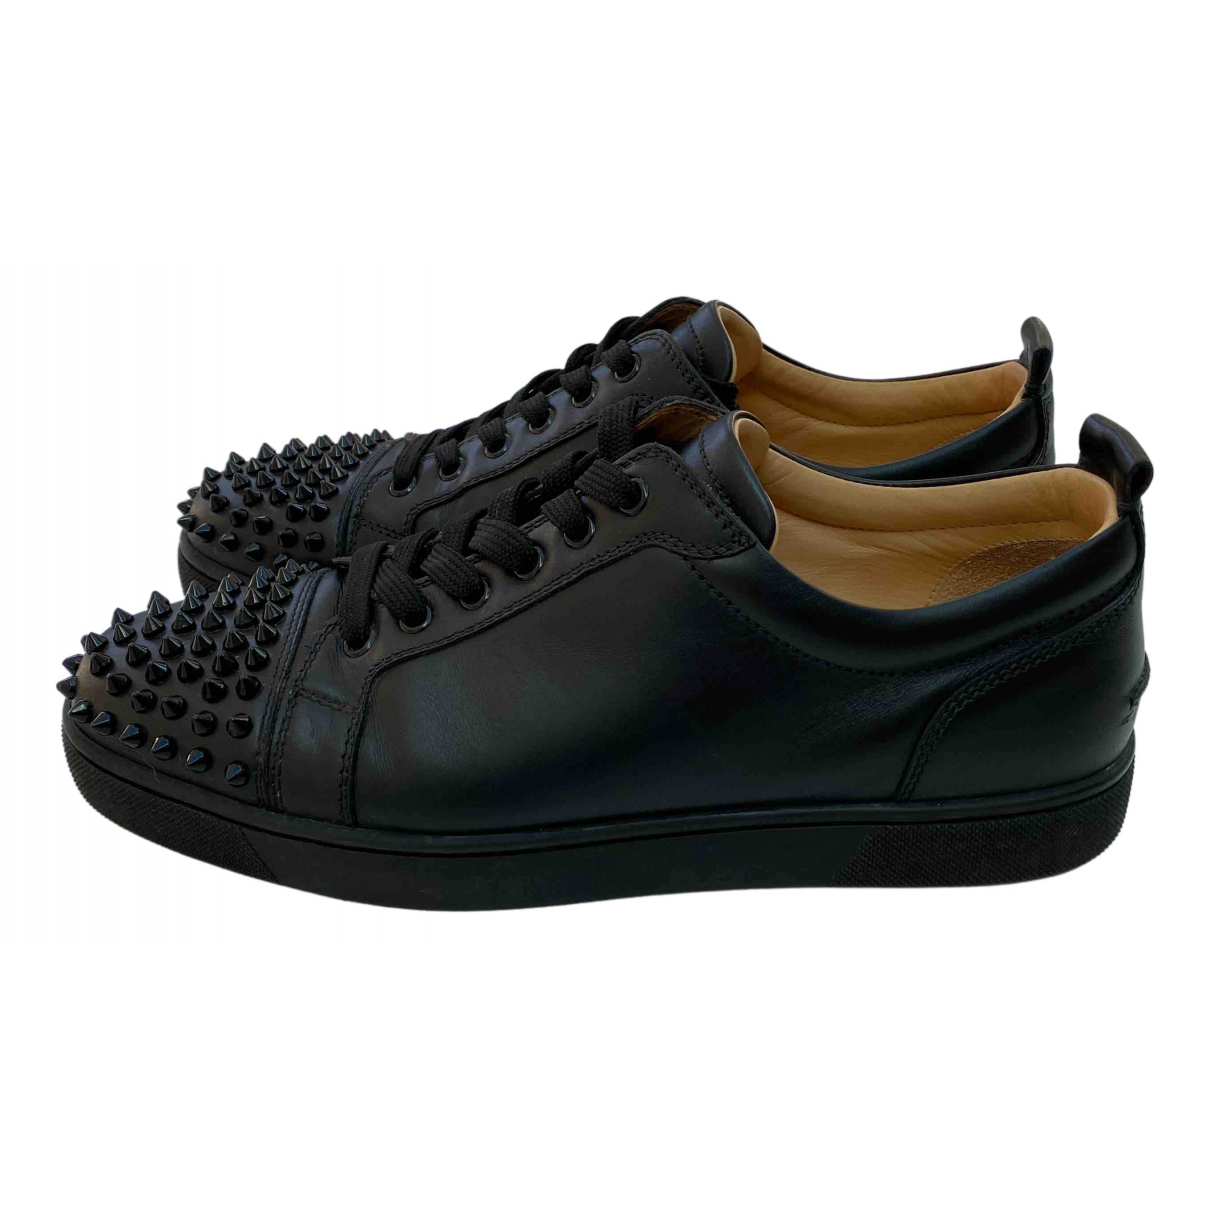 Christian Louboutin - Baskets Louis junior spike pour homme en cuir - noir